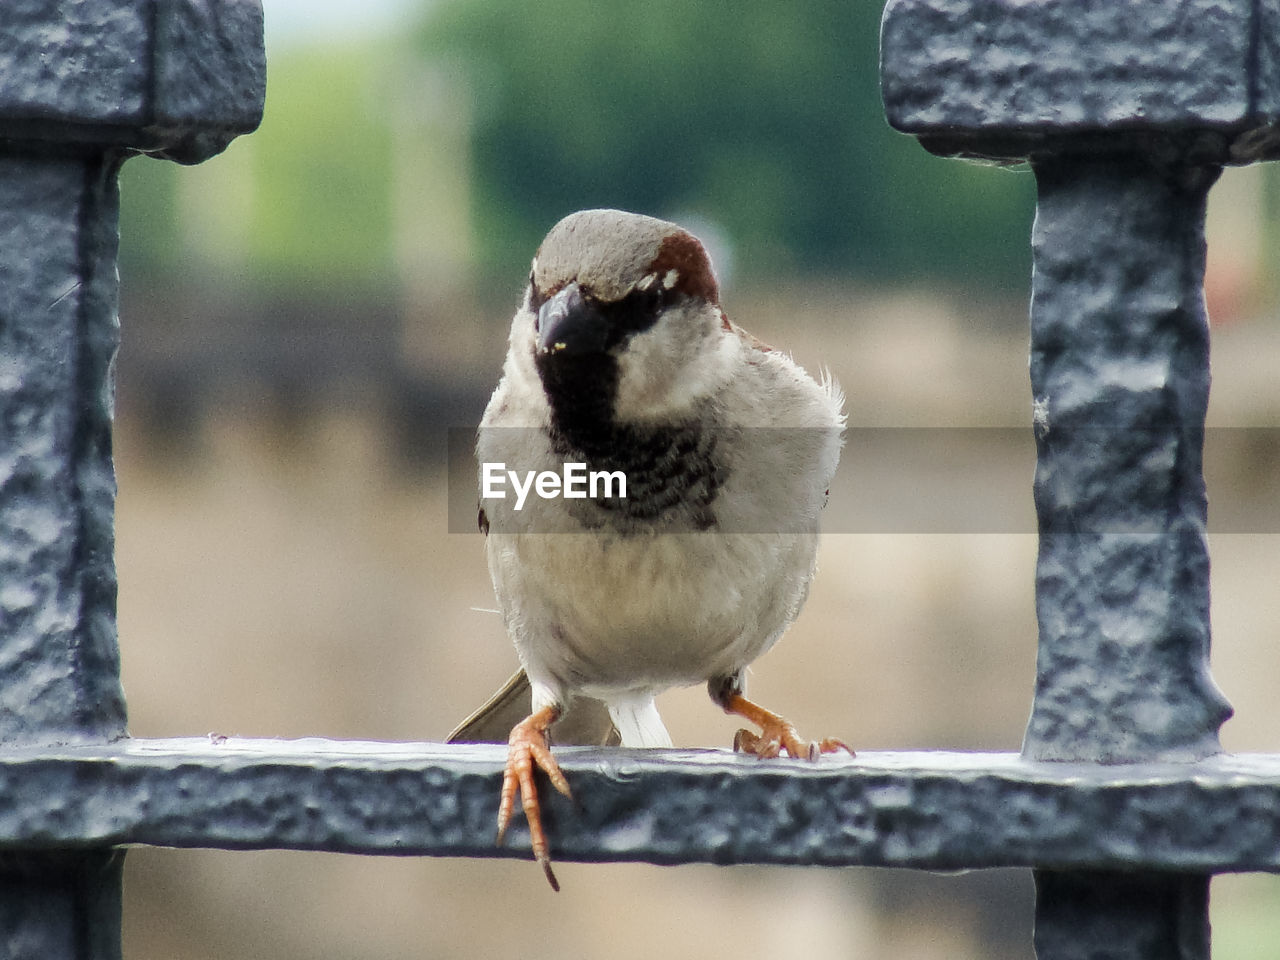 bird, animal themes, focus on foreground, animal, vertebrate, animal wildlife, animals in the wild, perching, close-up, one animal, day, no people, front view, railing, nature, outdoors, sparrow, boundary, looking at camera, metal